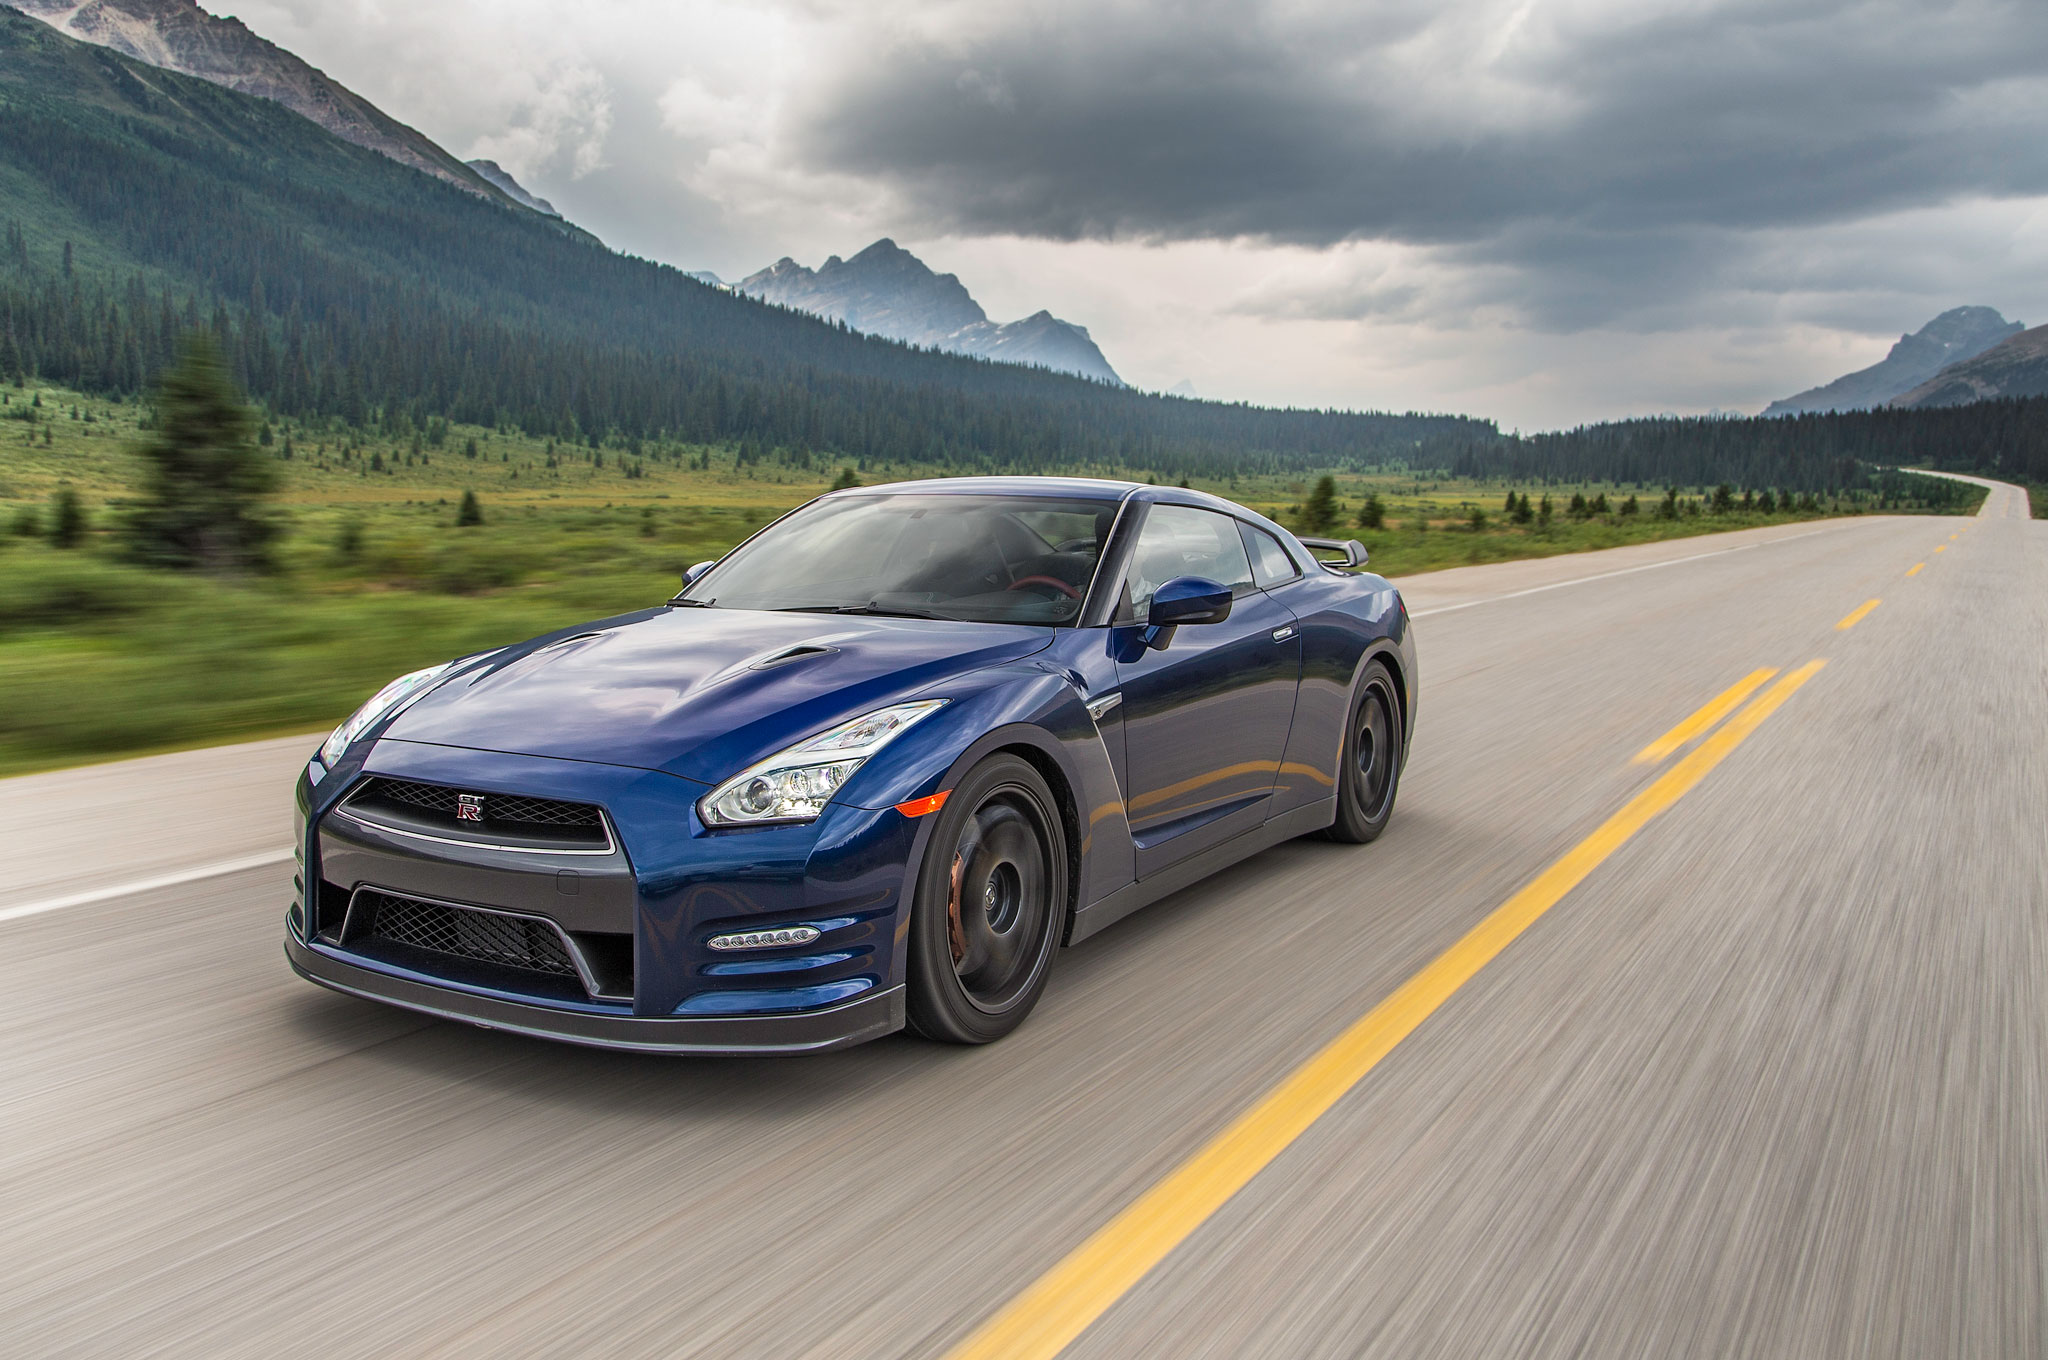 epic drives: exploring alberta, canada in a 2015 nissan gt-r